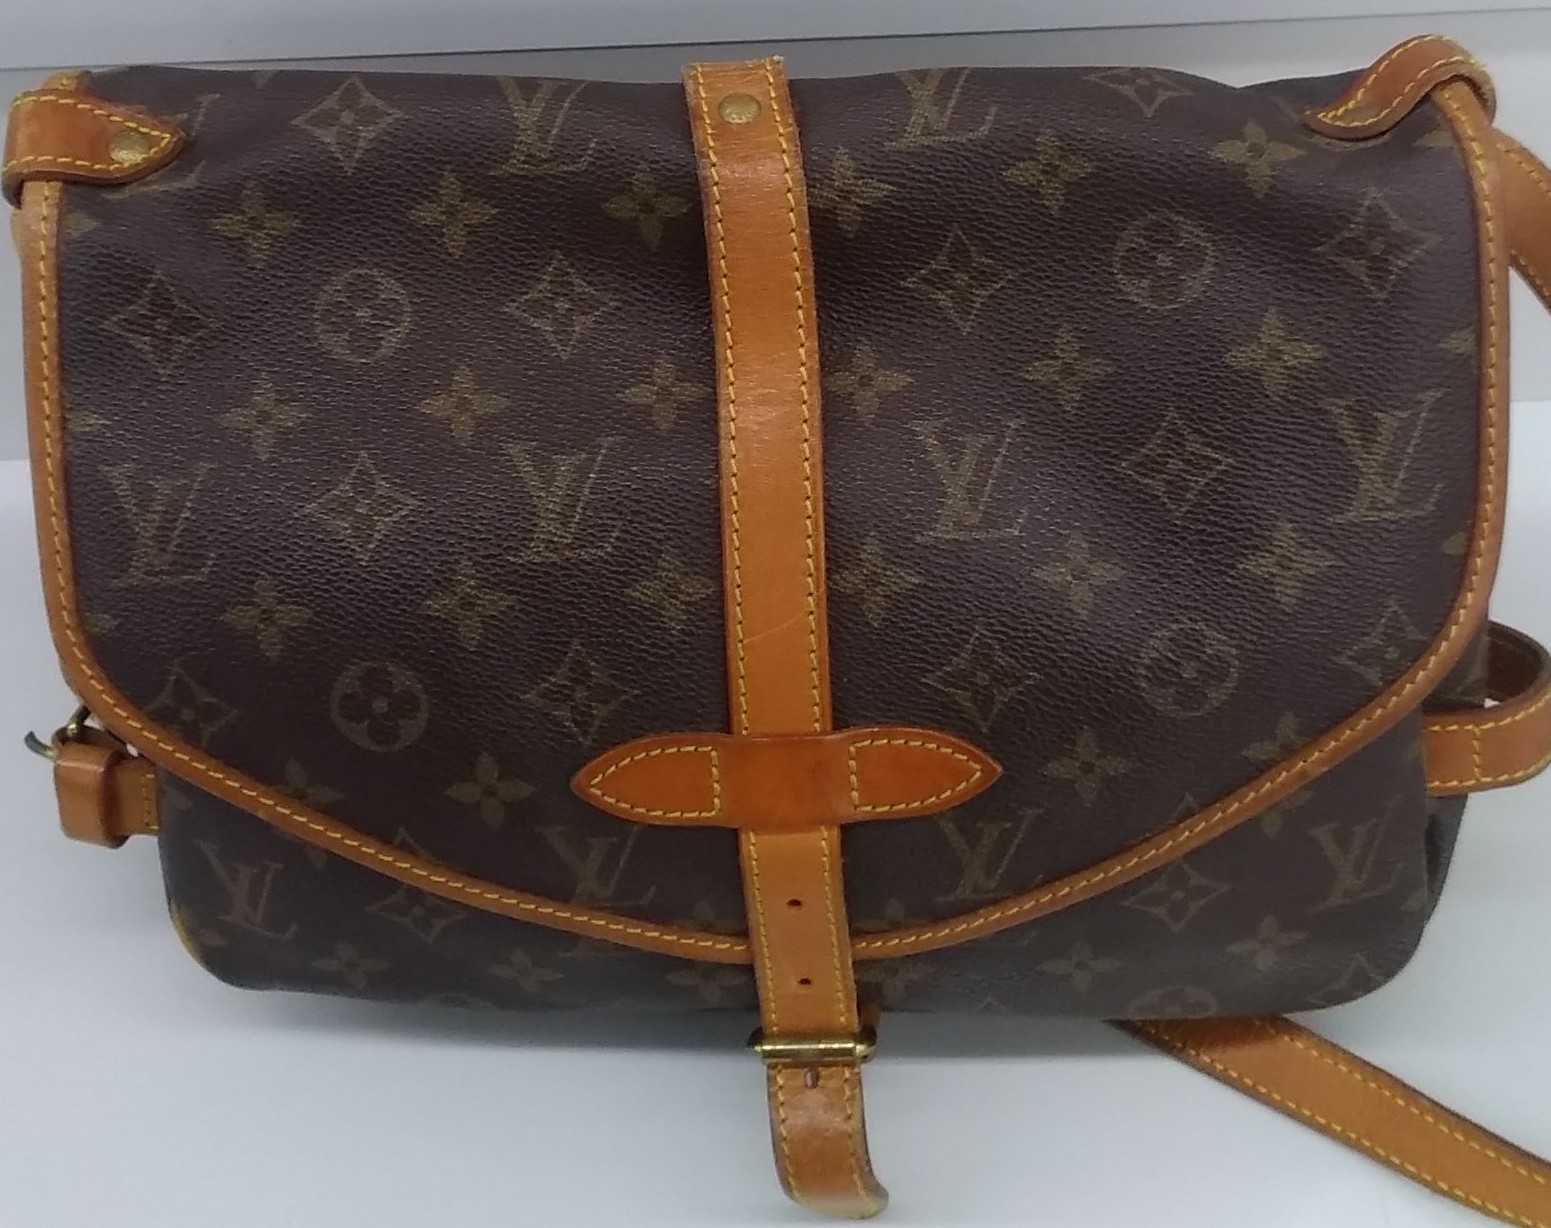 ソミュール|LOUIS VUITTON